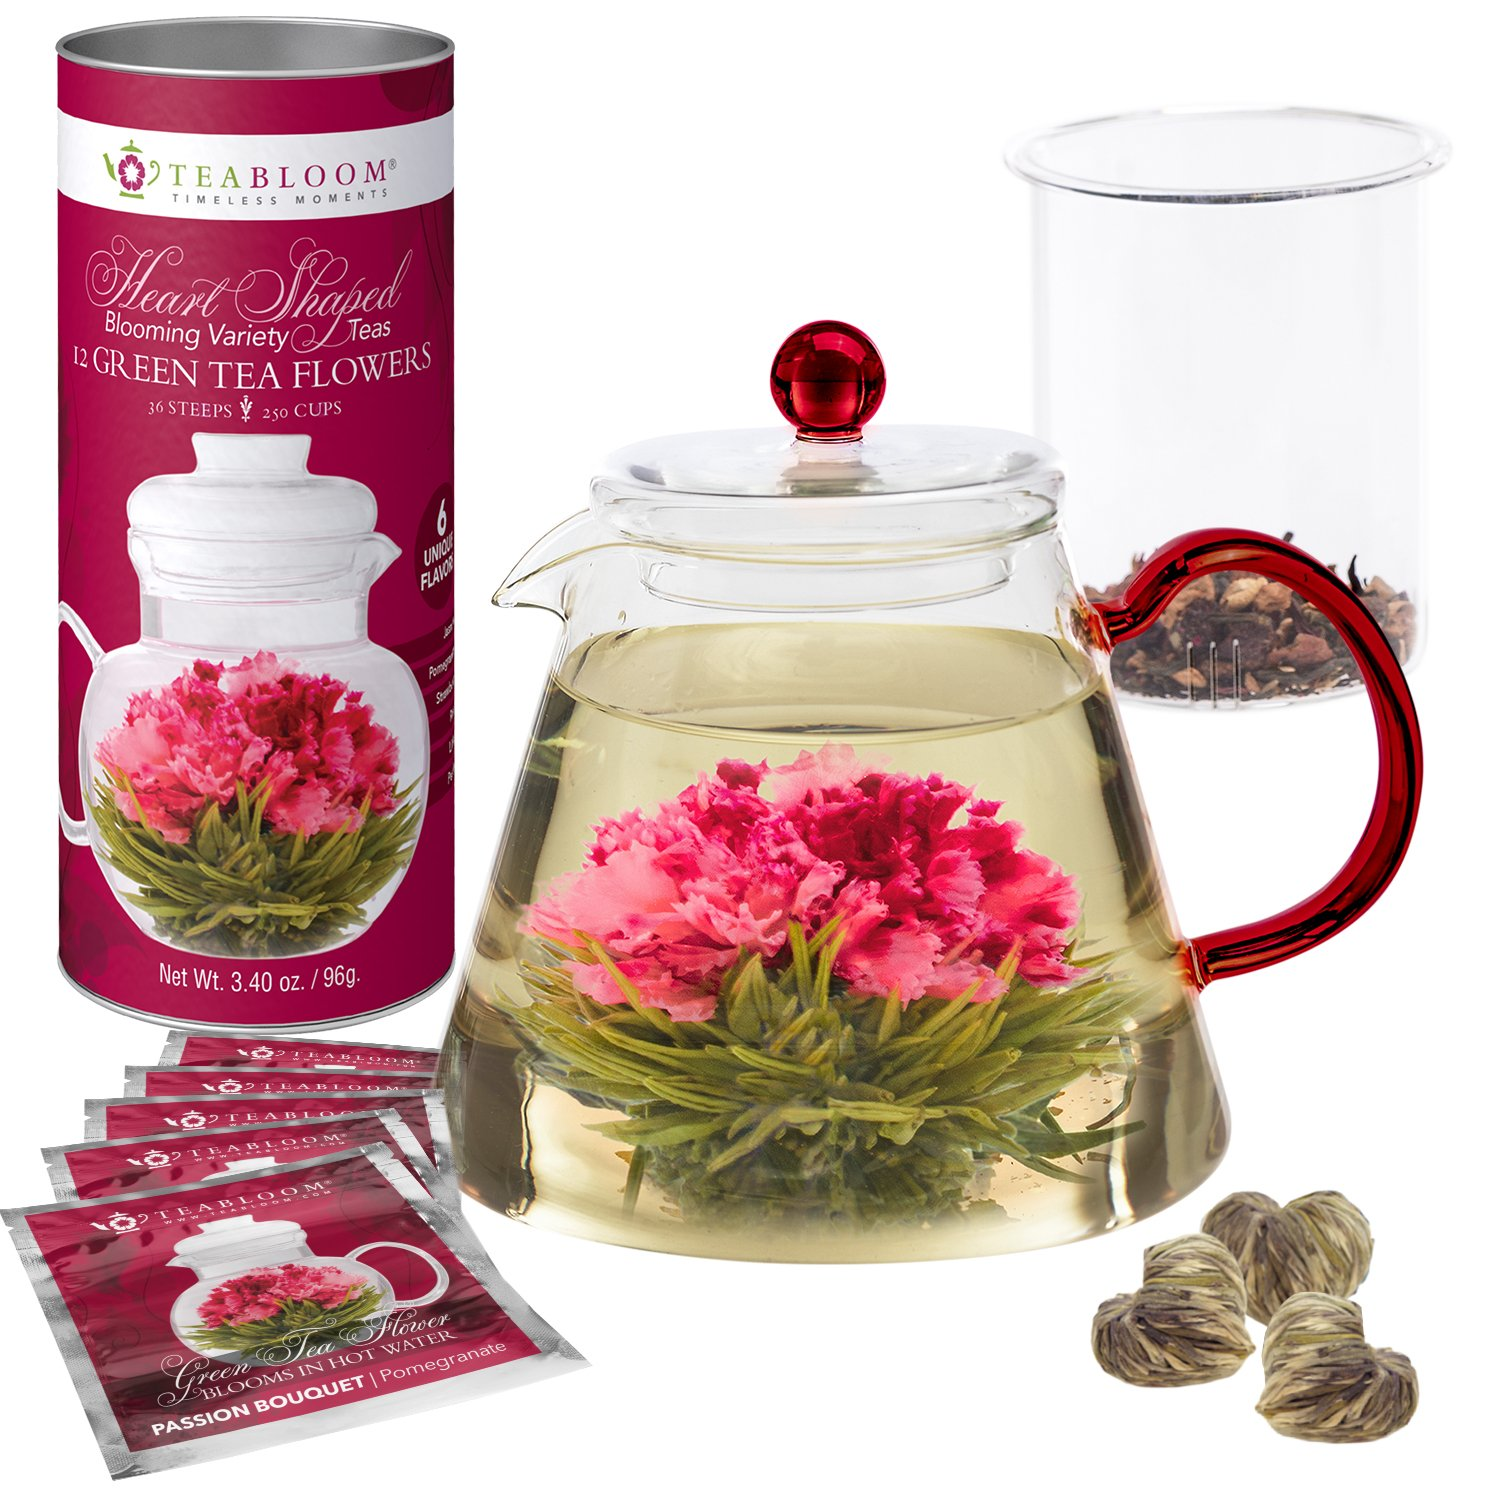 Teabloom AMORE Flowering Tea Gift Set - Stovetop Safe Glass Teapot with Removable Loose Leaf Tea Glass Infuser (34 oz) - 12 Heart-Shaped Blooming Tea Flowers Included